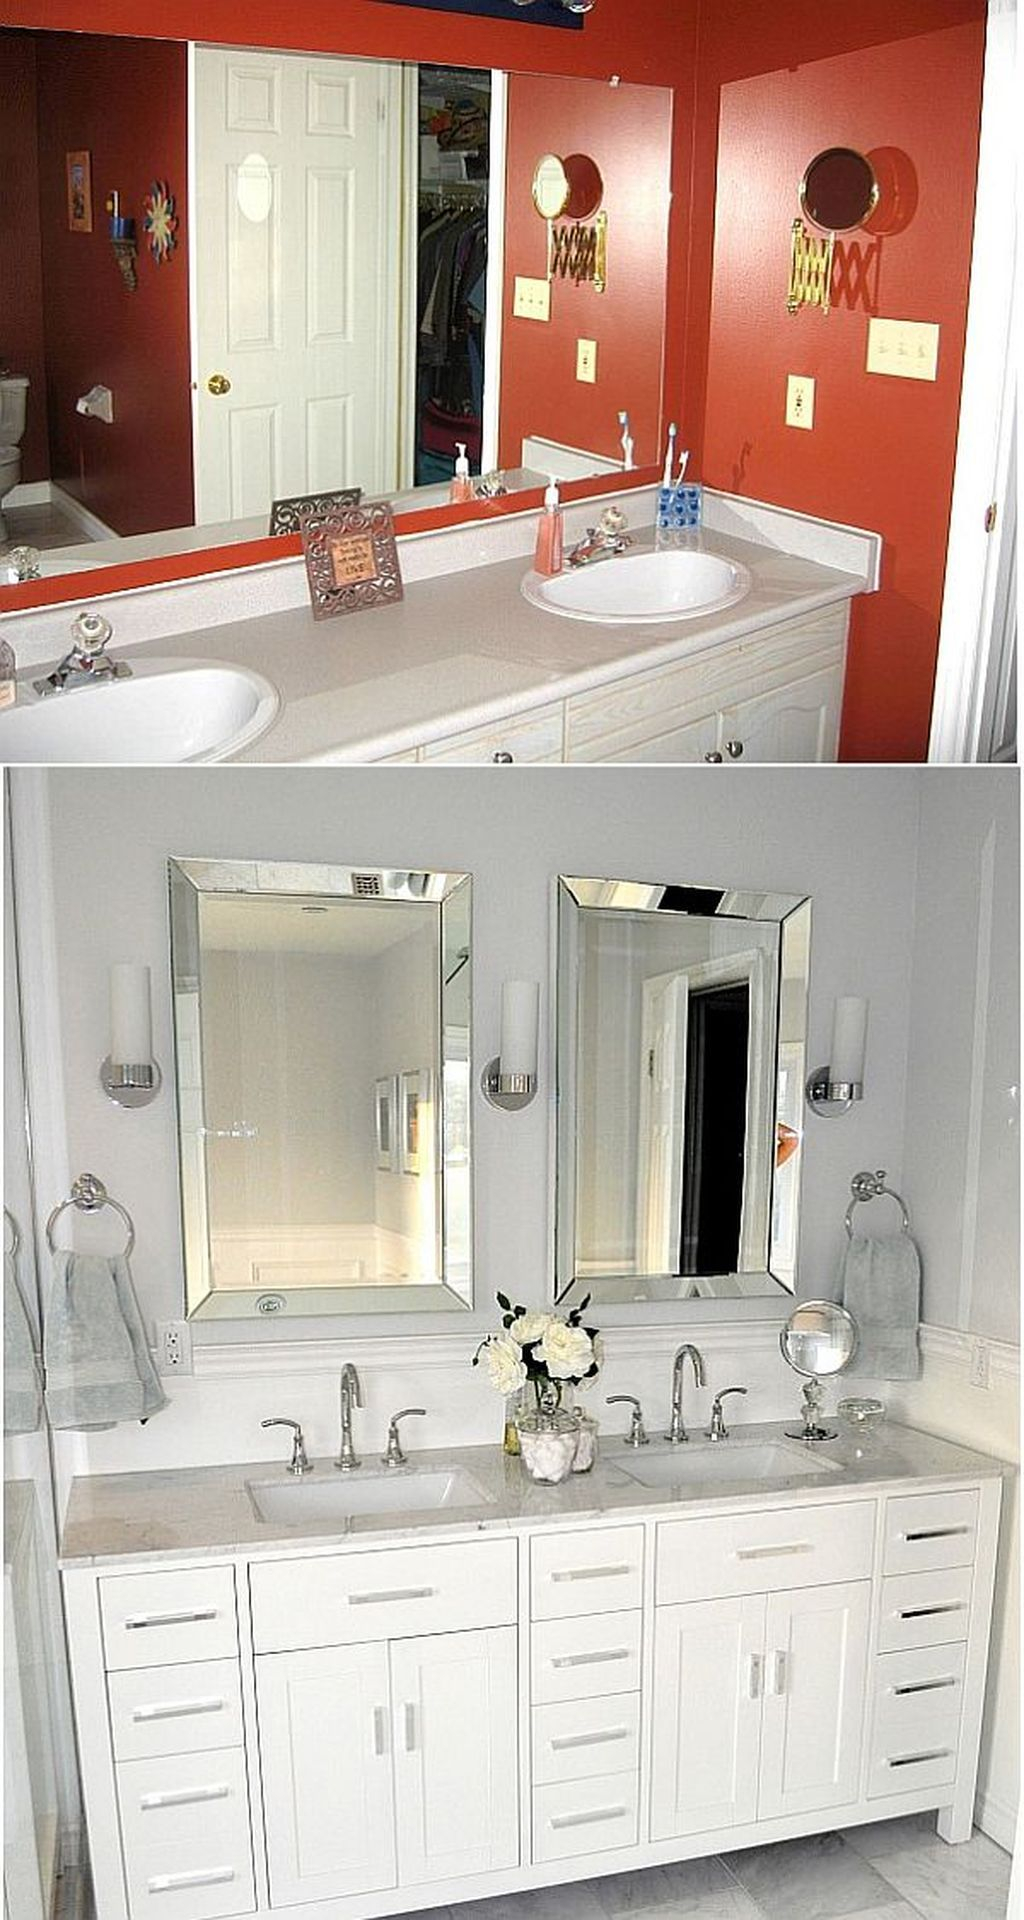 Inspiring Rustic Bathroom Vanity Remodel Ideas 62